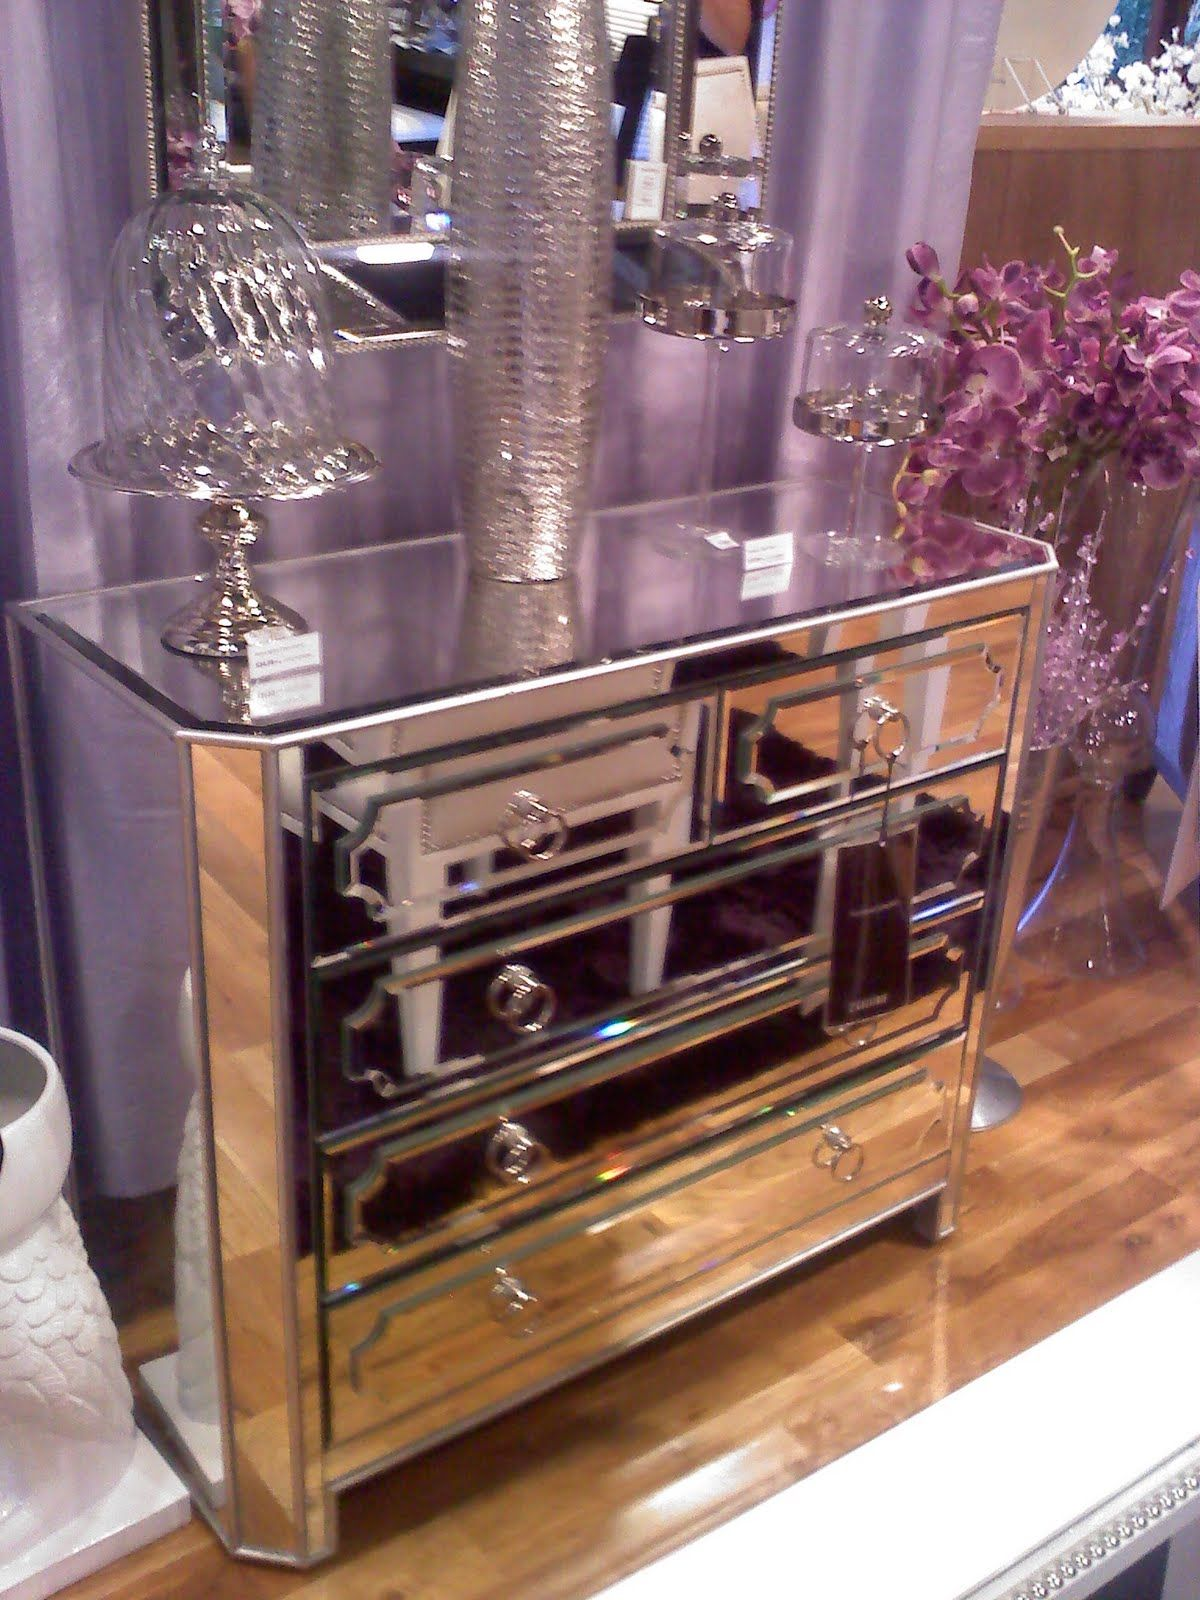 High Quality Z Gallerie Mirrored Furniture #7 Ohgraciepie I Want Everything  In Z Gallerie